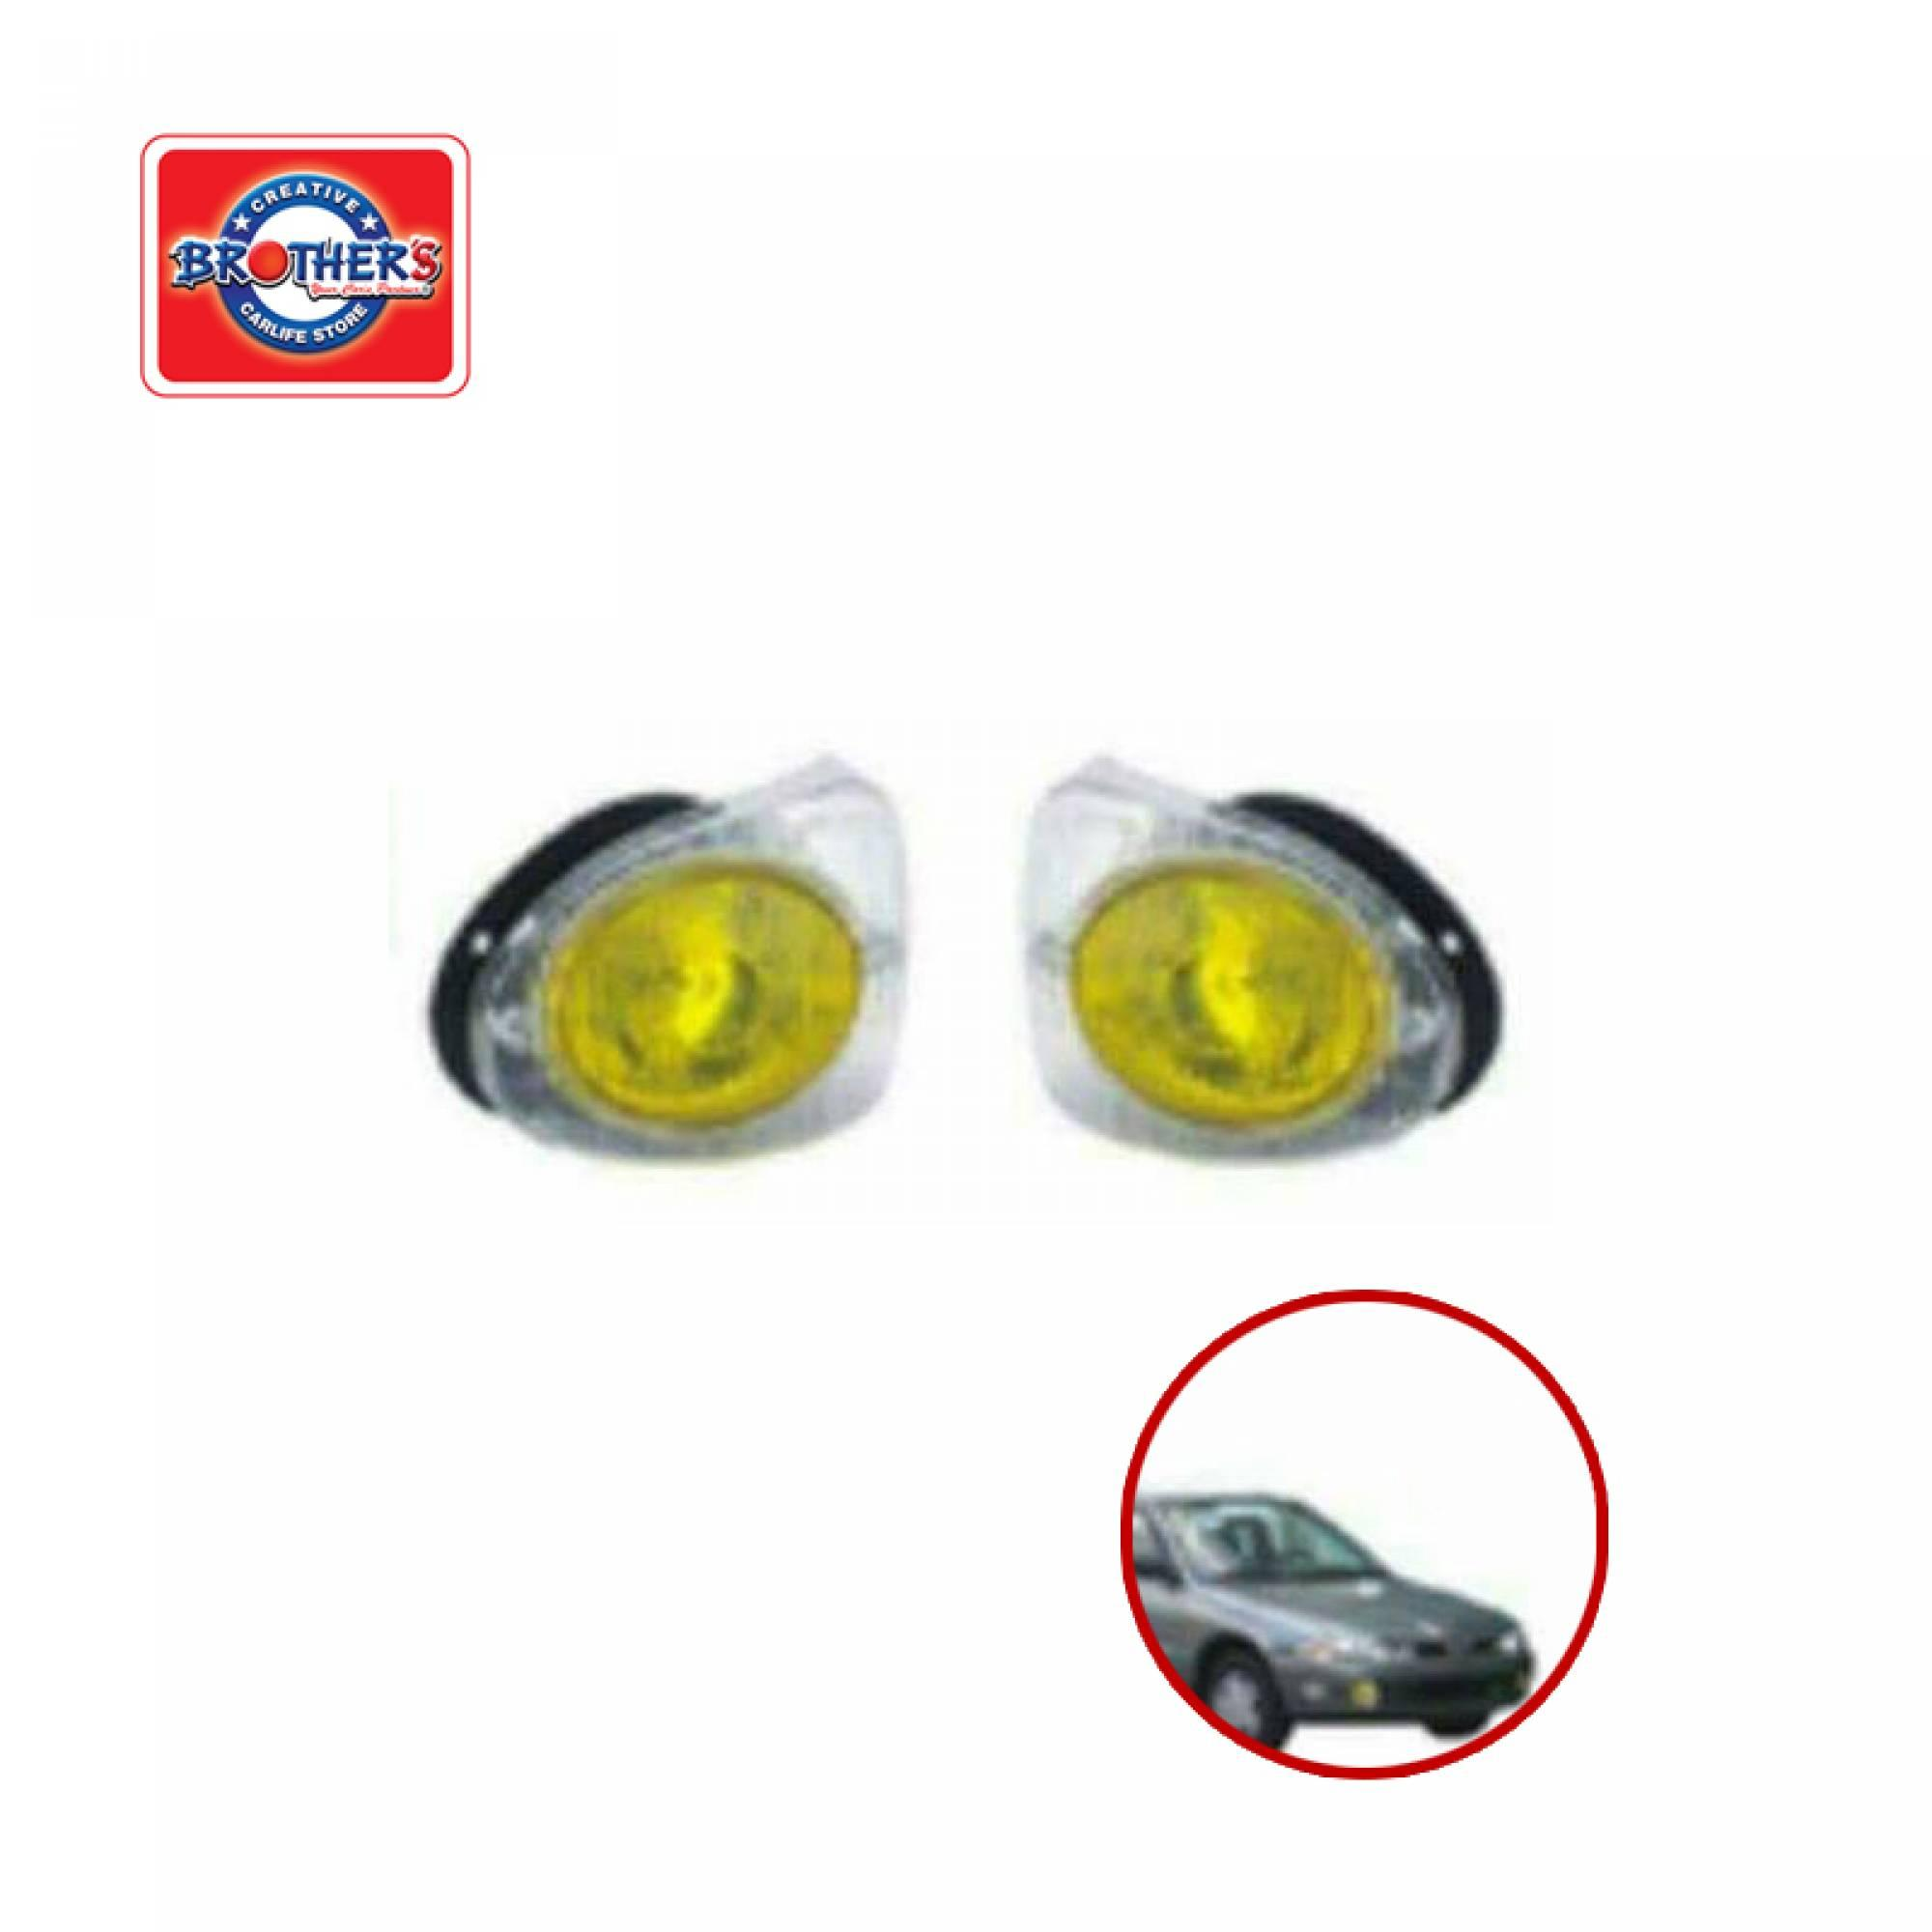 Pleasant Wr080 Wira Fog Lamp Brothers Factory Outlet M Sdn Wiring Cloud Overrenstrafr09Org